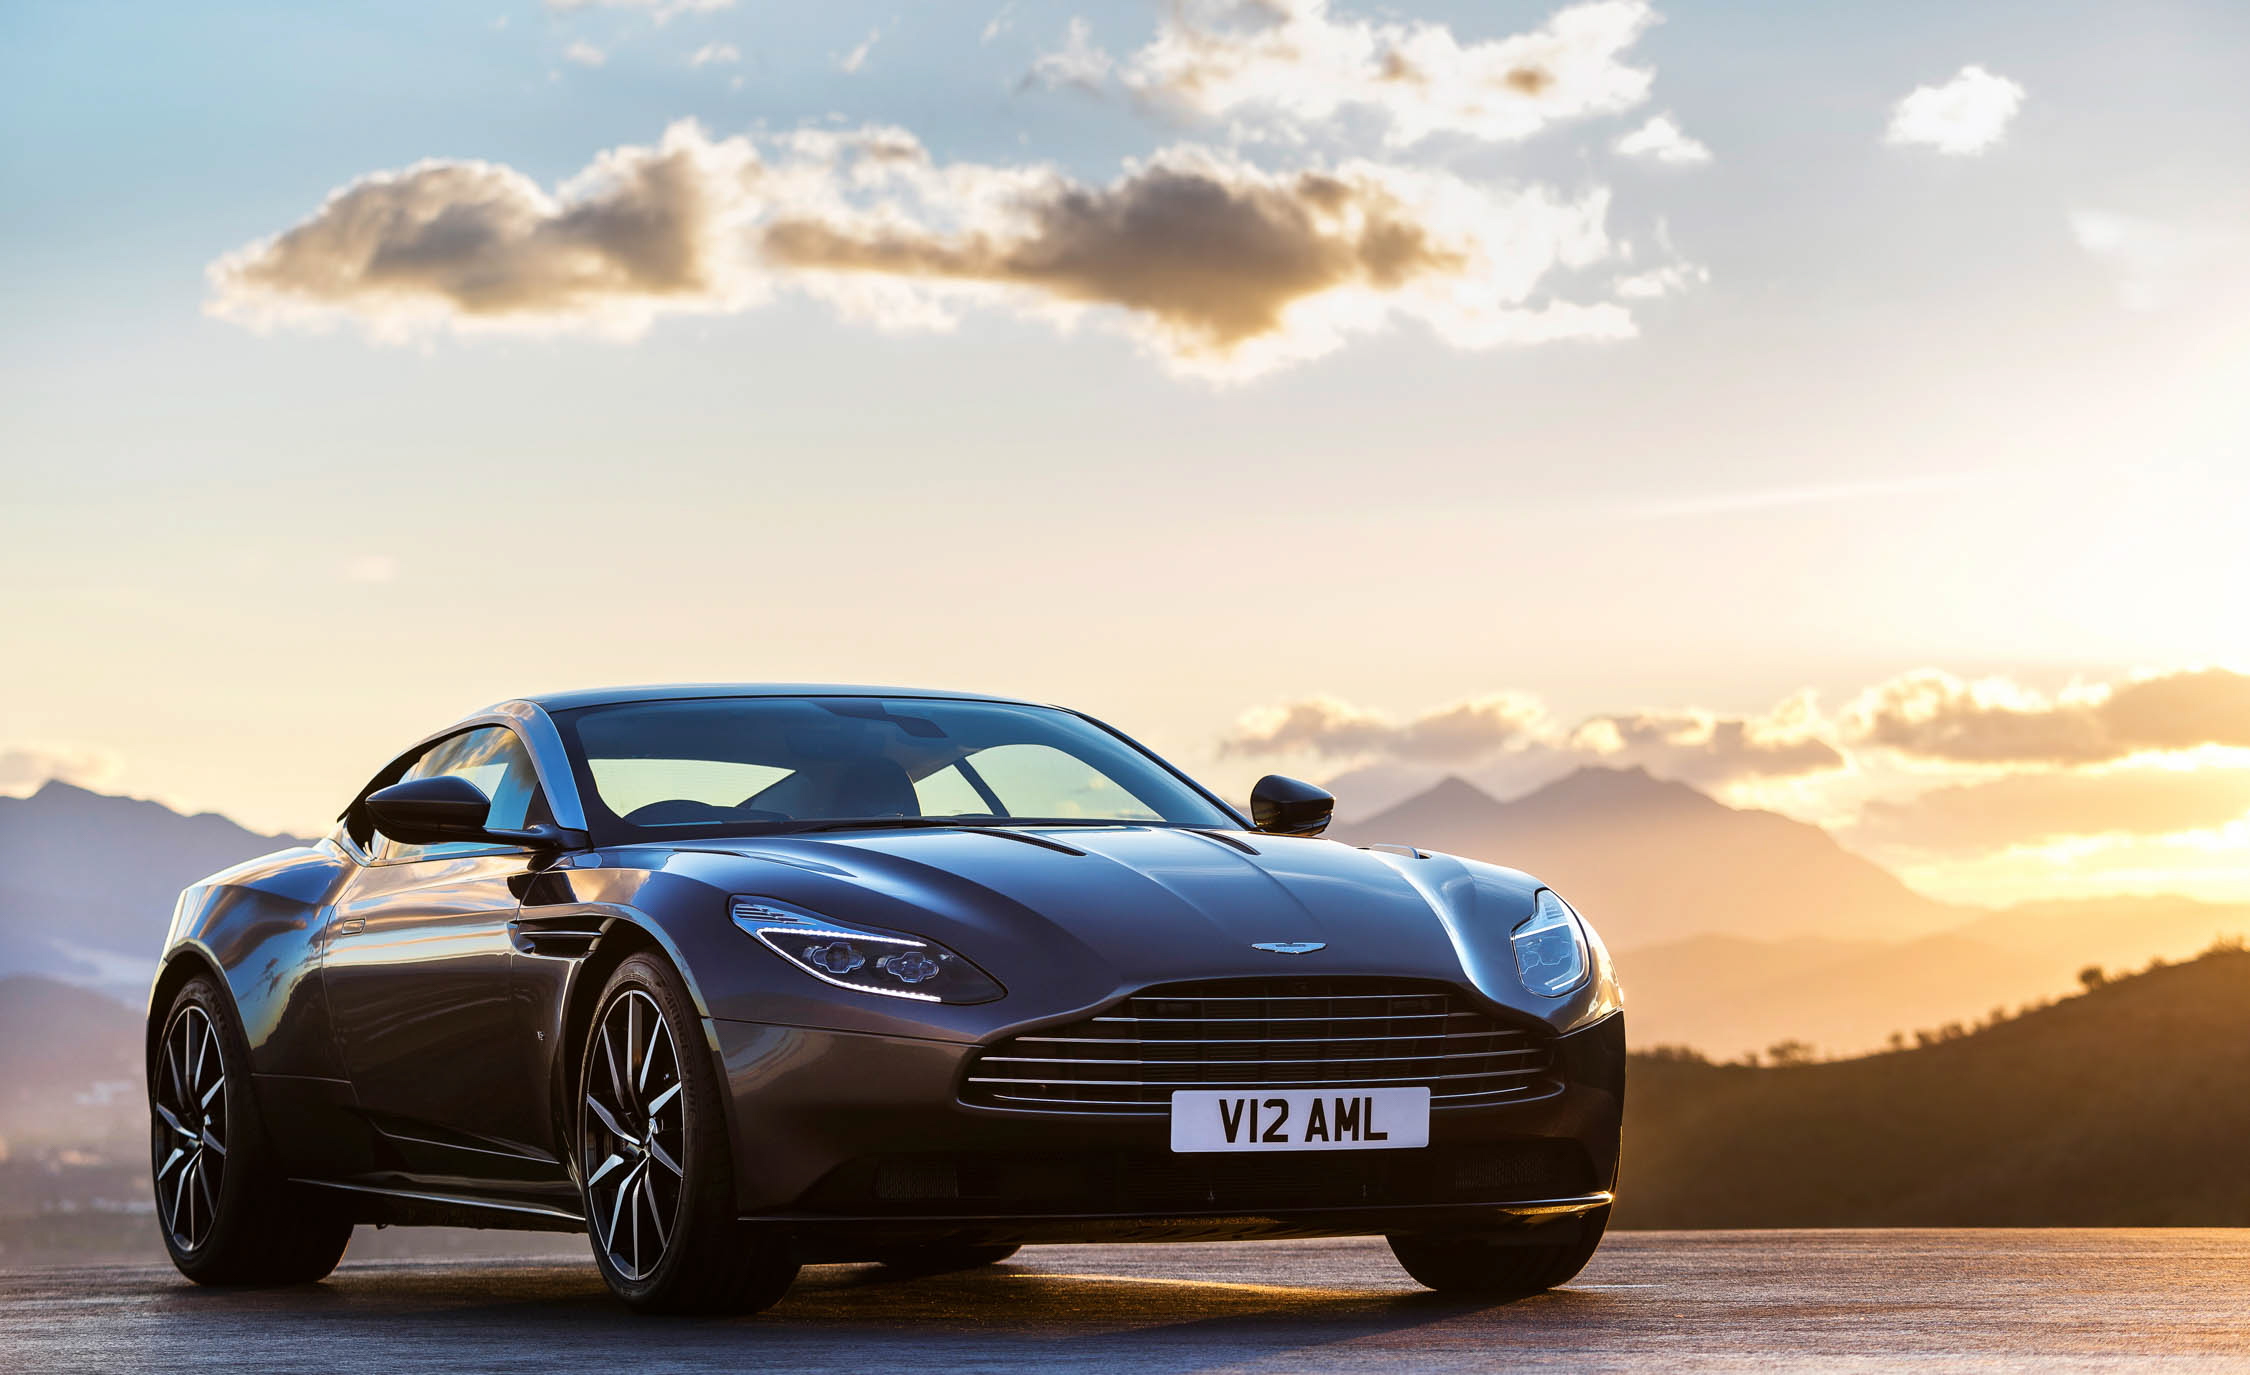 2017 Aston Martin Db11 Wallpaper Hd (Photo 21 of 22)